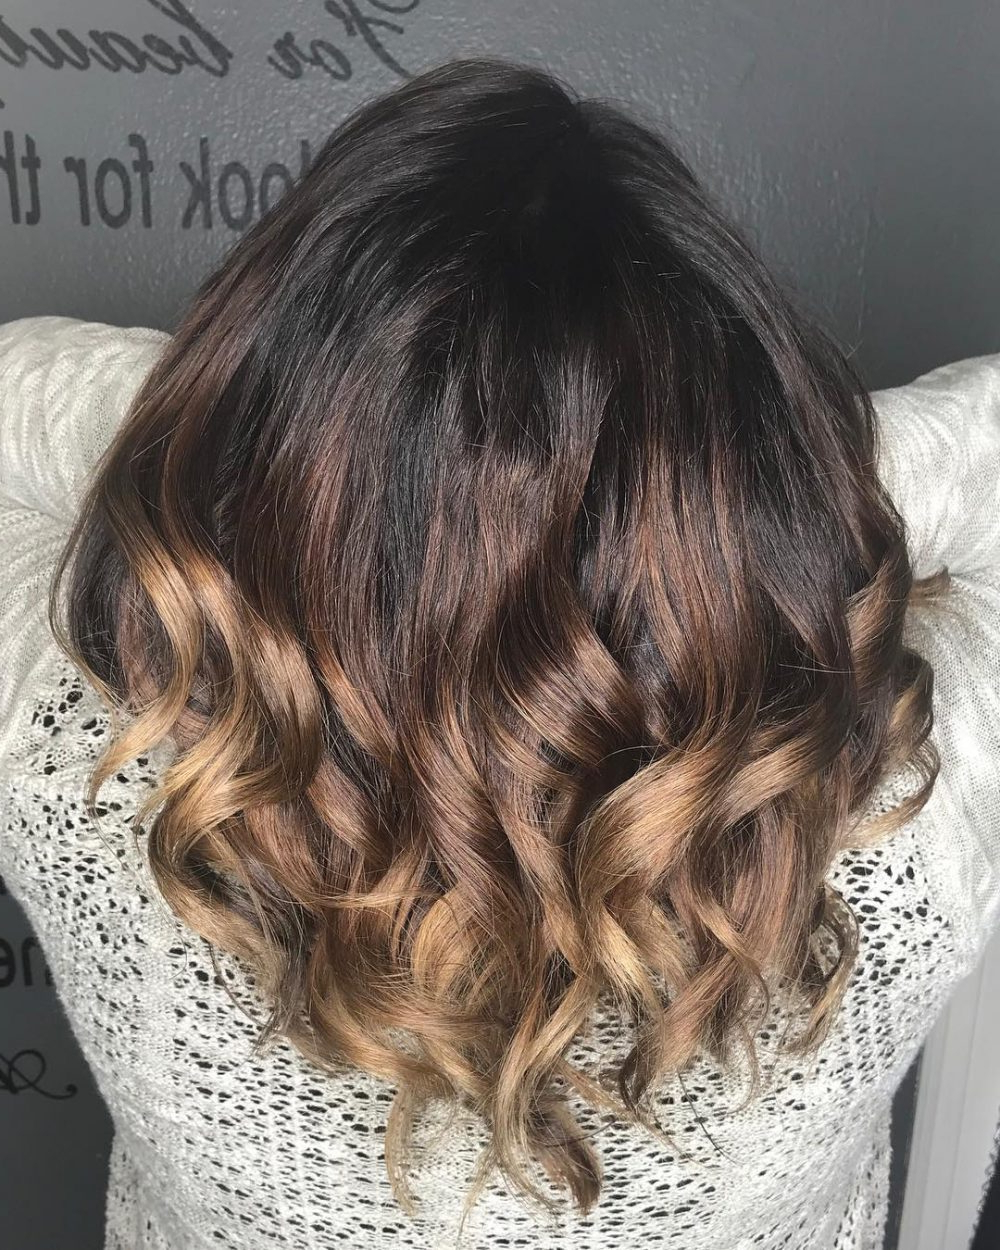 36 Top Short Ombre Hair Ideas Of 2018 With Regard To Long Feathered Espresso Brown Pixie Hairstyles (View 4 of 20)